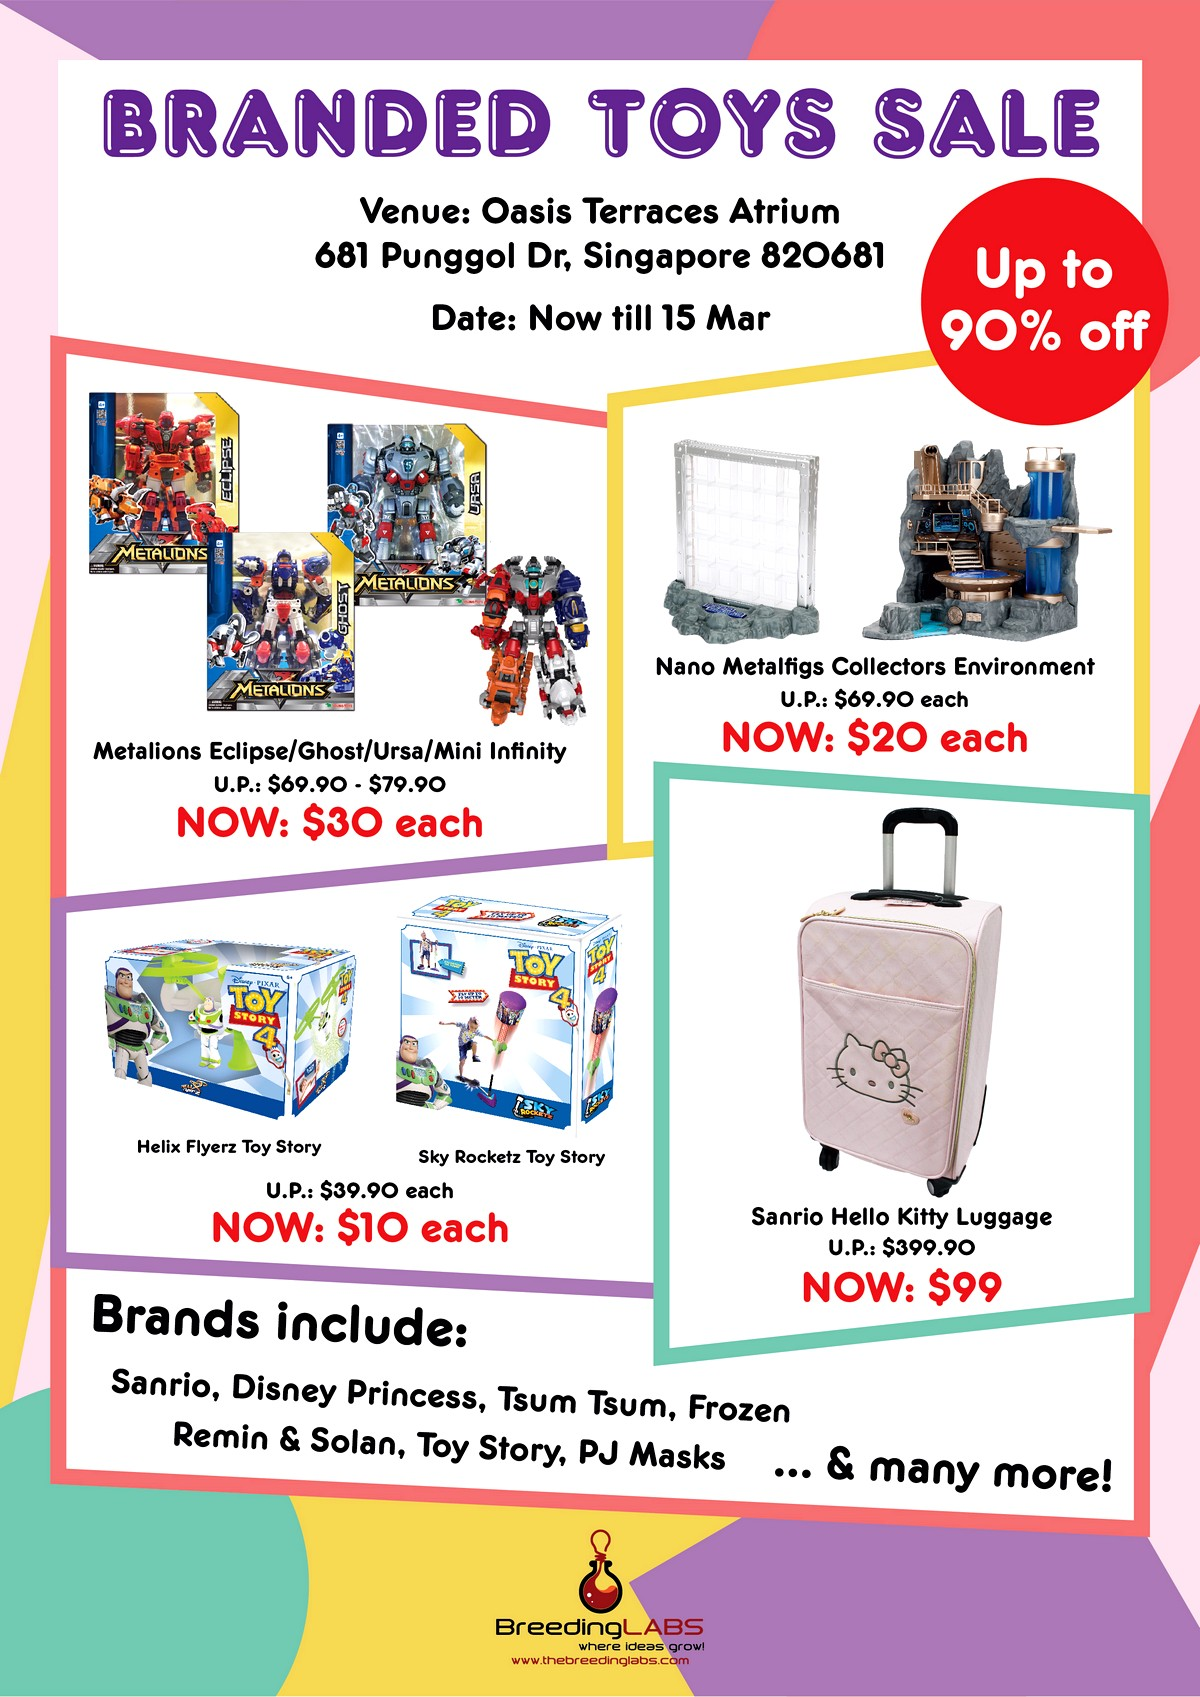 Branded-Toy-sale-Oasis-terraceWarehouse-Sale-CLearance-Singapore- 2-15 Mar 2020: Branded Toys Atrium Sale at Oasis Terraces! Up to 90% Off